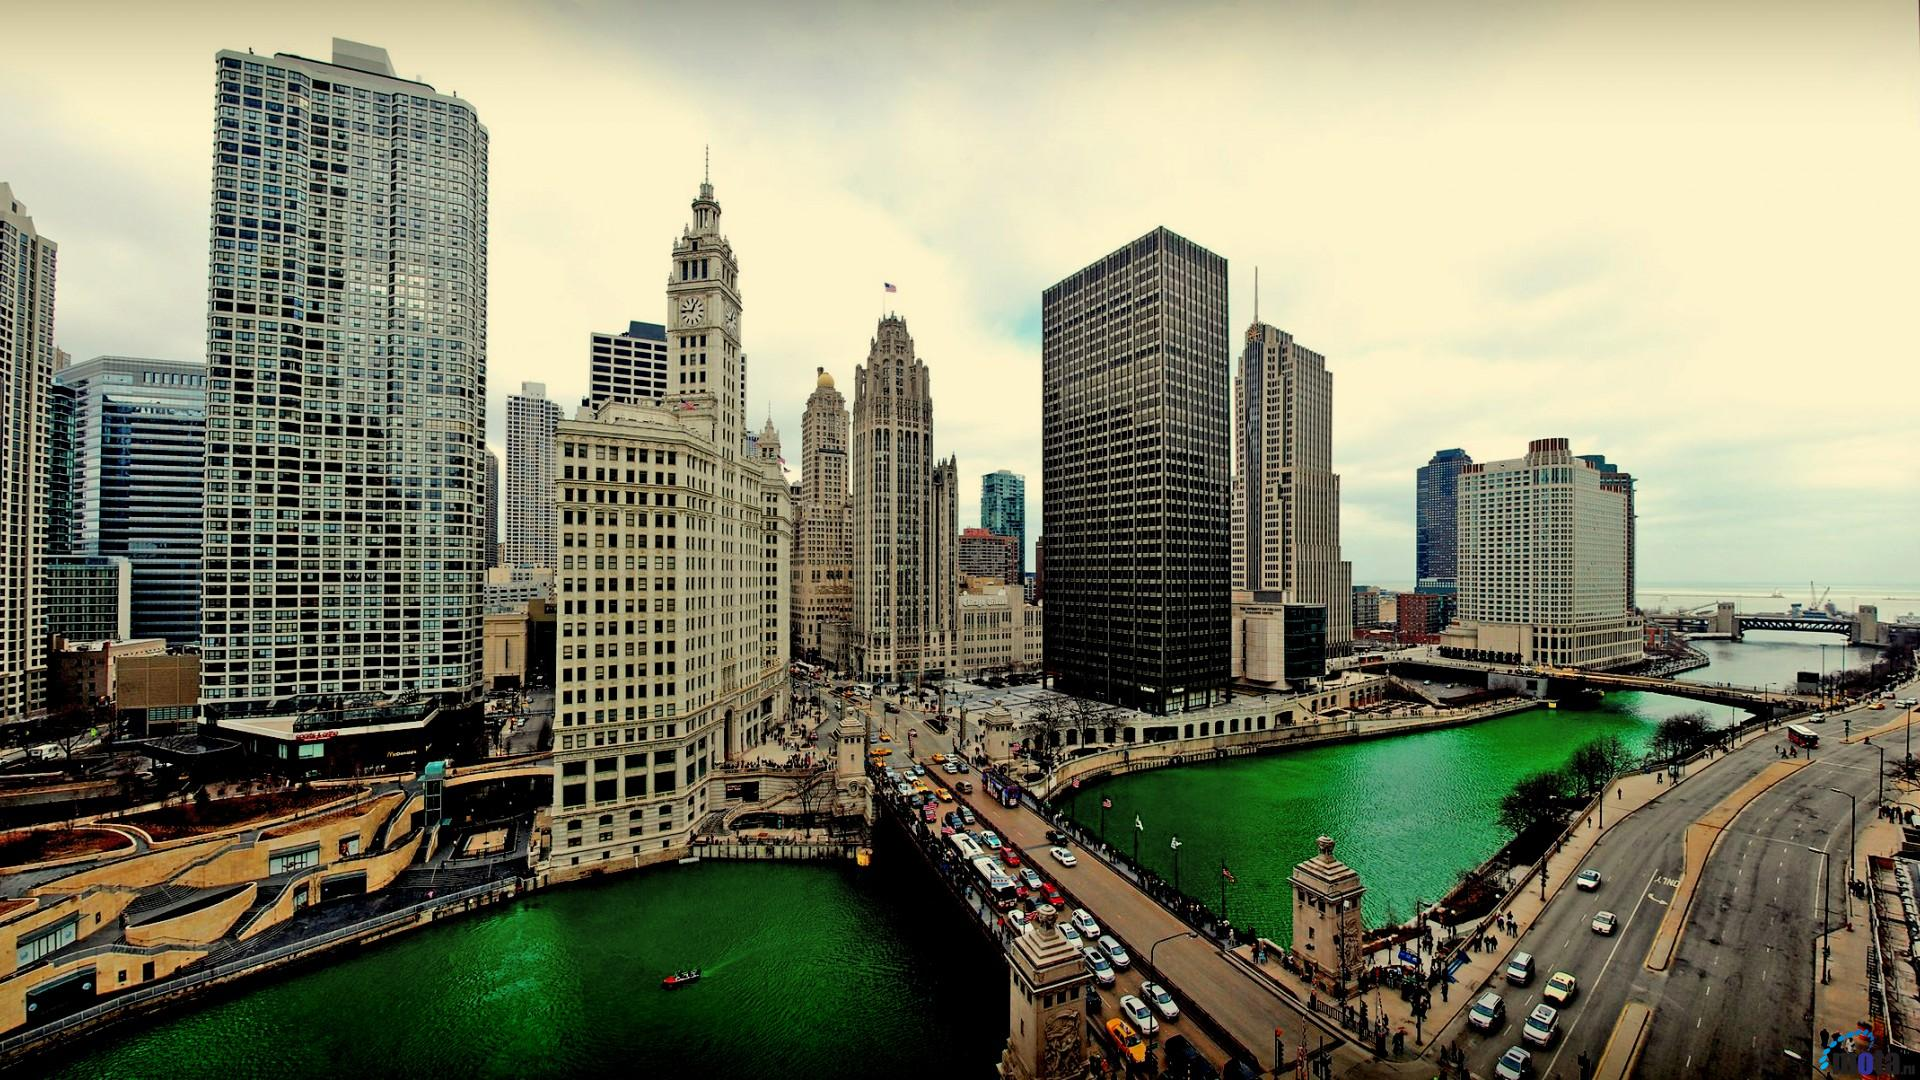 Download Wallpaper Chicago Illinois 1920 x 1080 HDTV 1920x1080